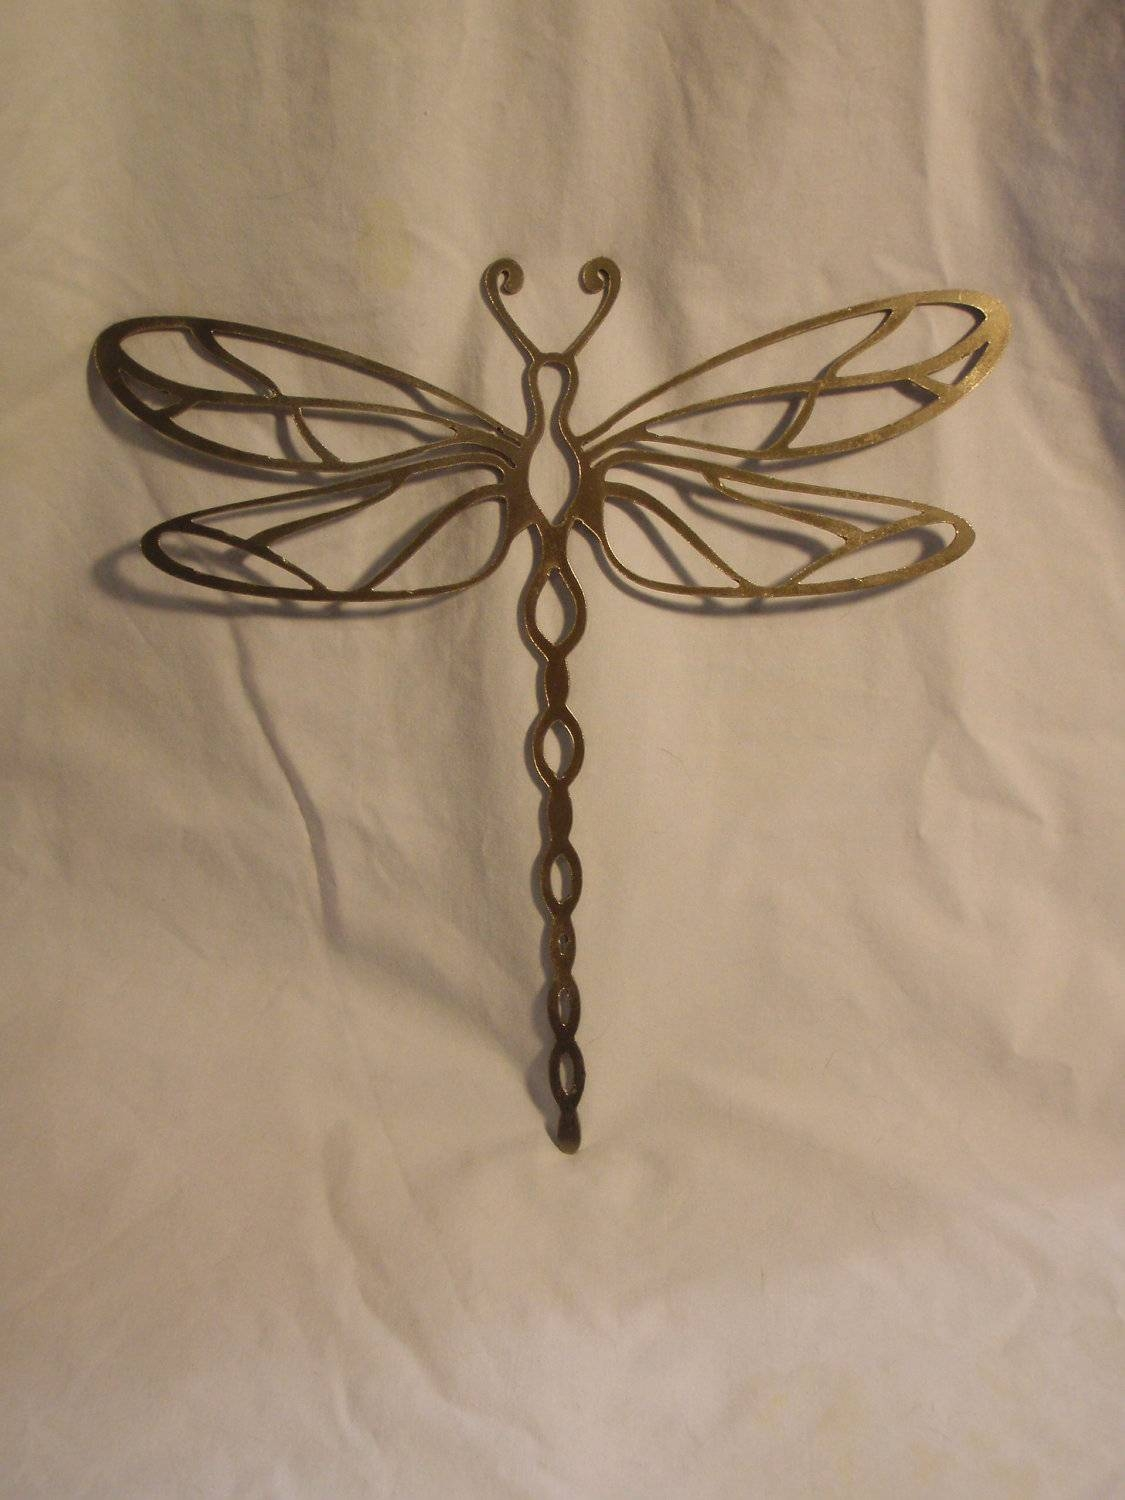 Wall Art Designs: Dragonfly Wall Art Metal Dragonfly Wall Art Regarding 2017 Dragonfly 3D Wall Art (View 18 of 20)